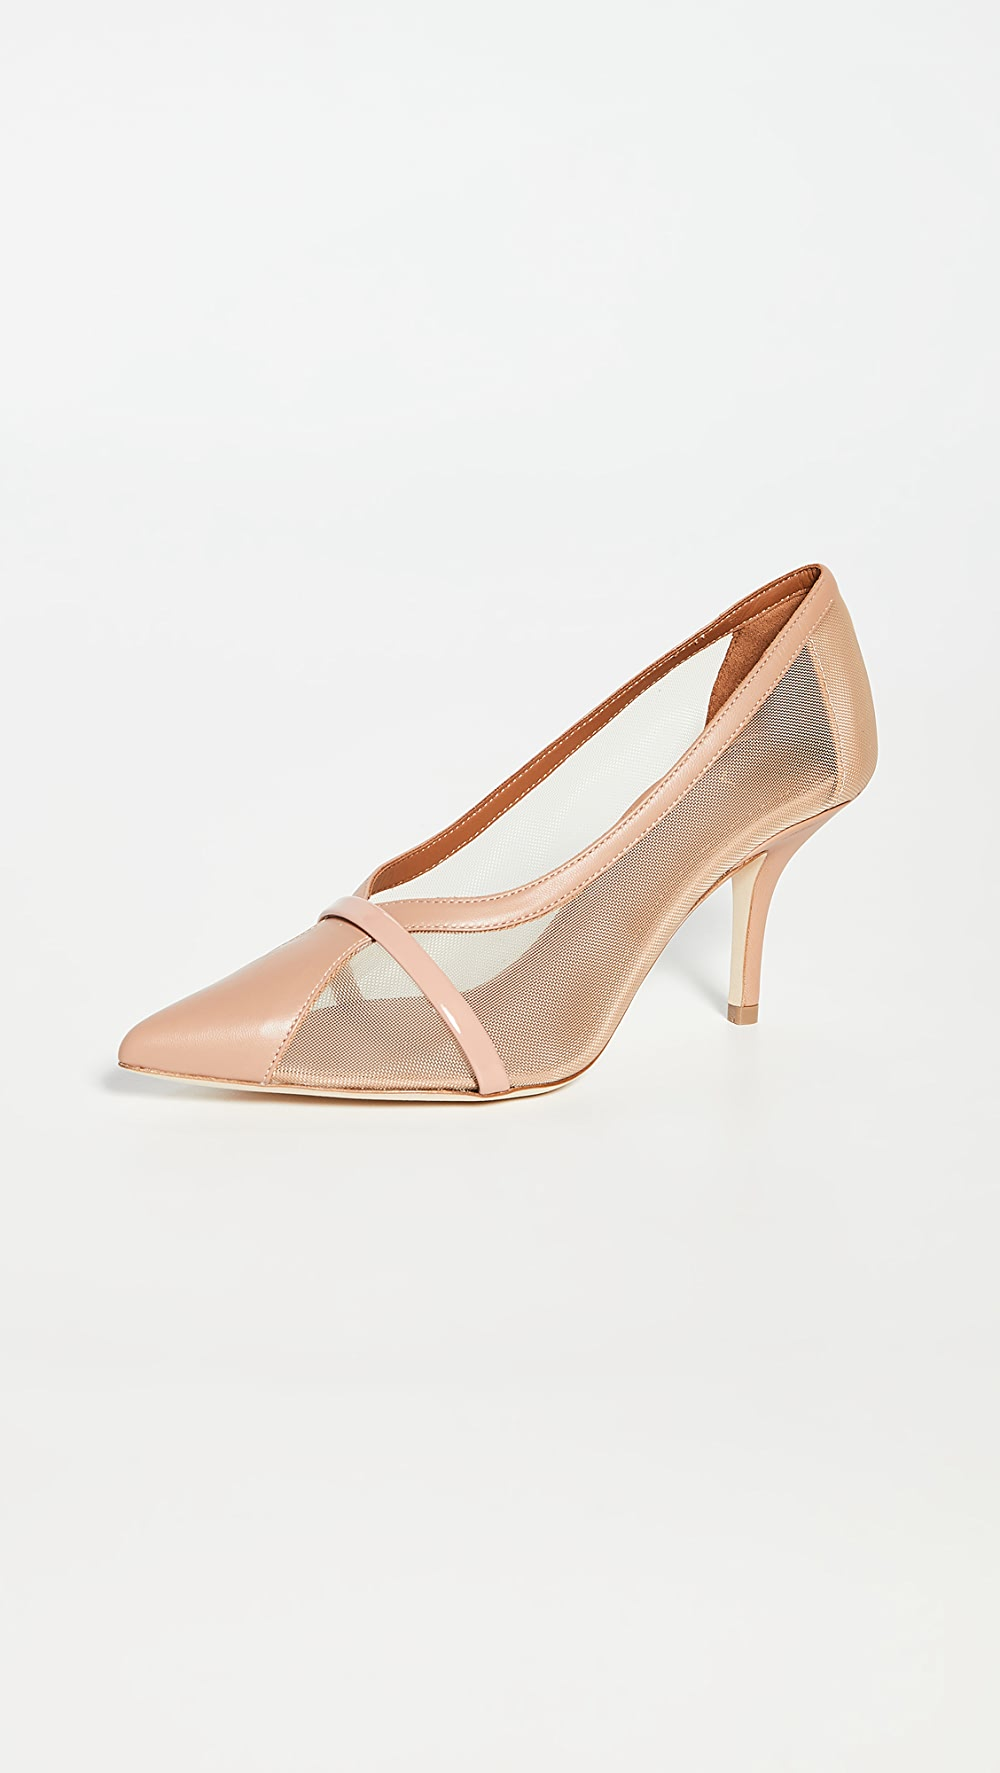 Ambitious Malone Souliers - Brook Pumps 70mm Finely Processed